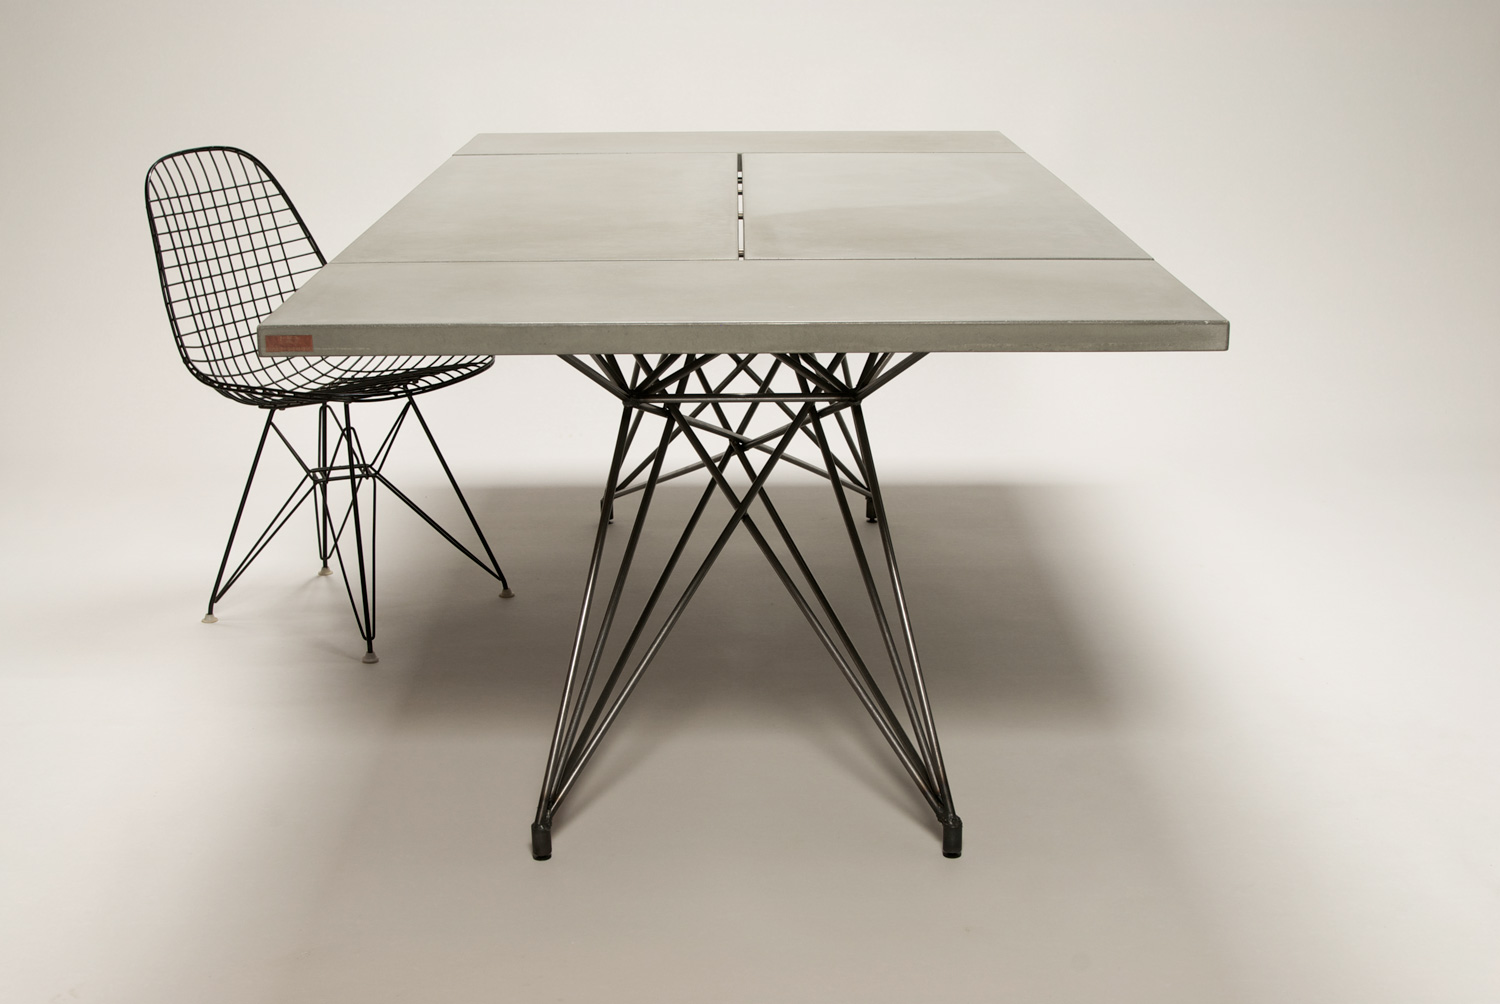 Custom concrete and steel modern dining table with an Eames wire dining chair